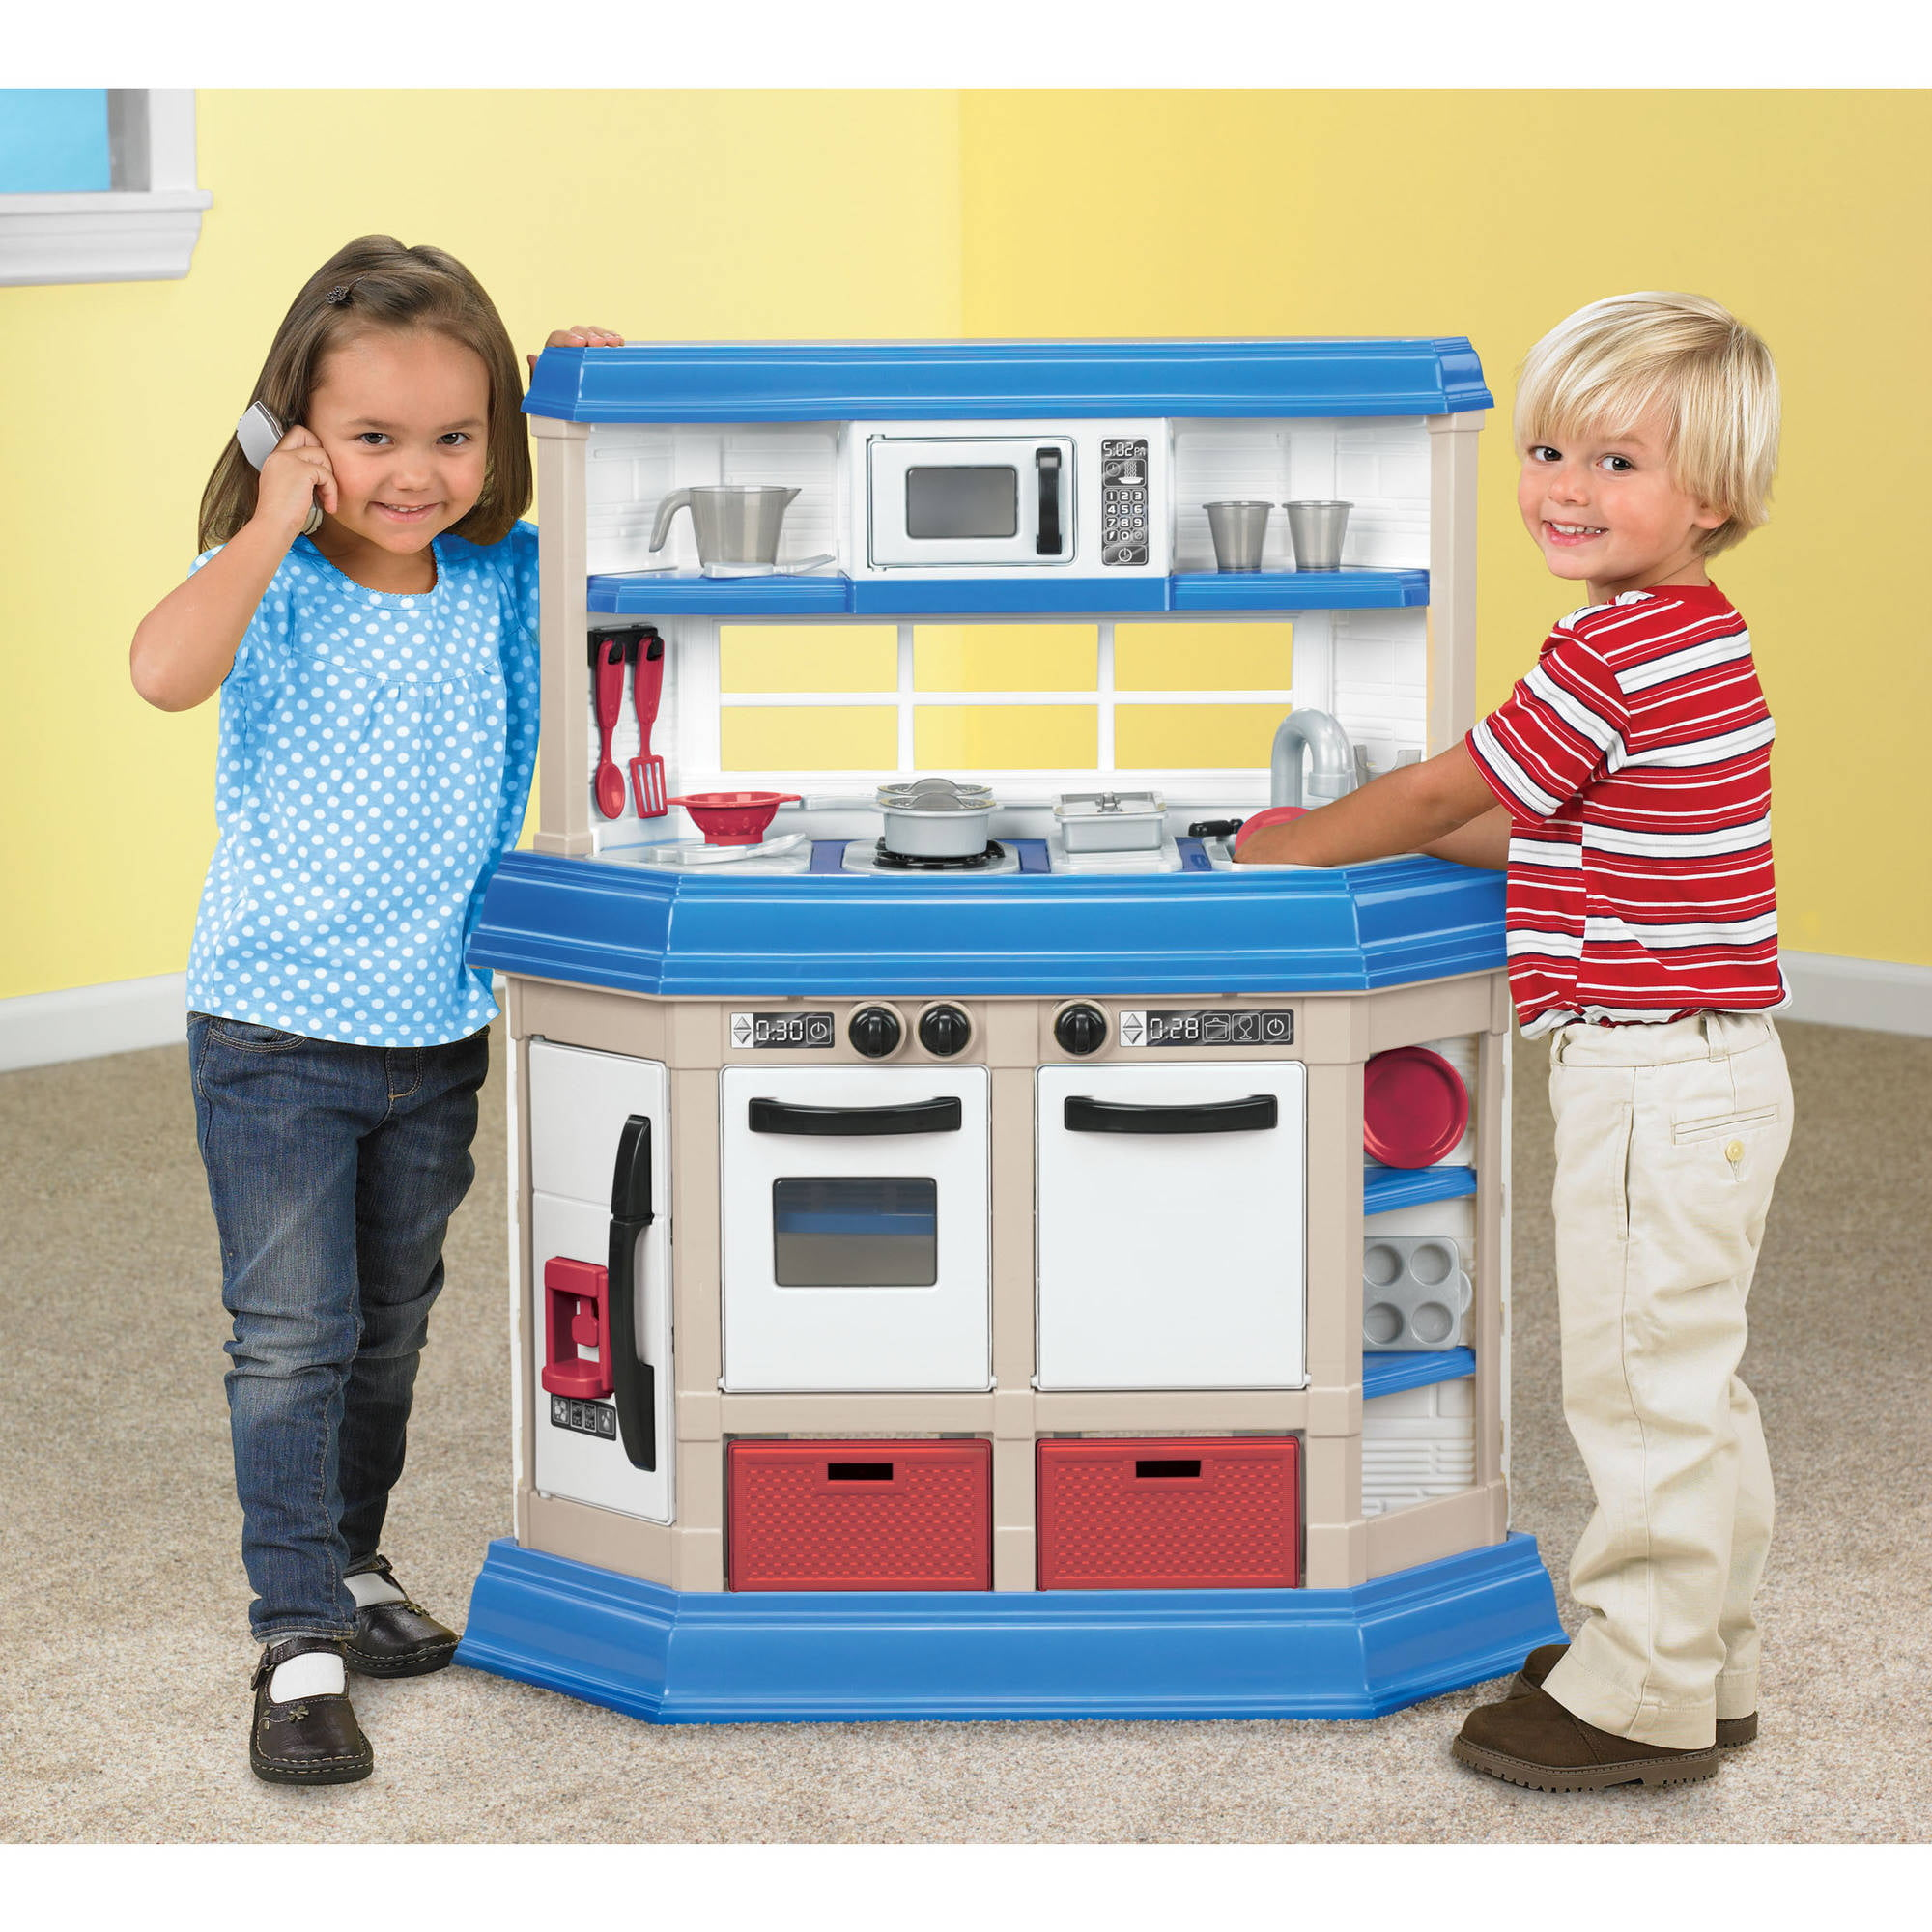 My Happy Kitchen Stove Sink Refrigerator Battery Operated Toy Doll ...